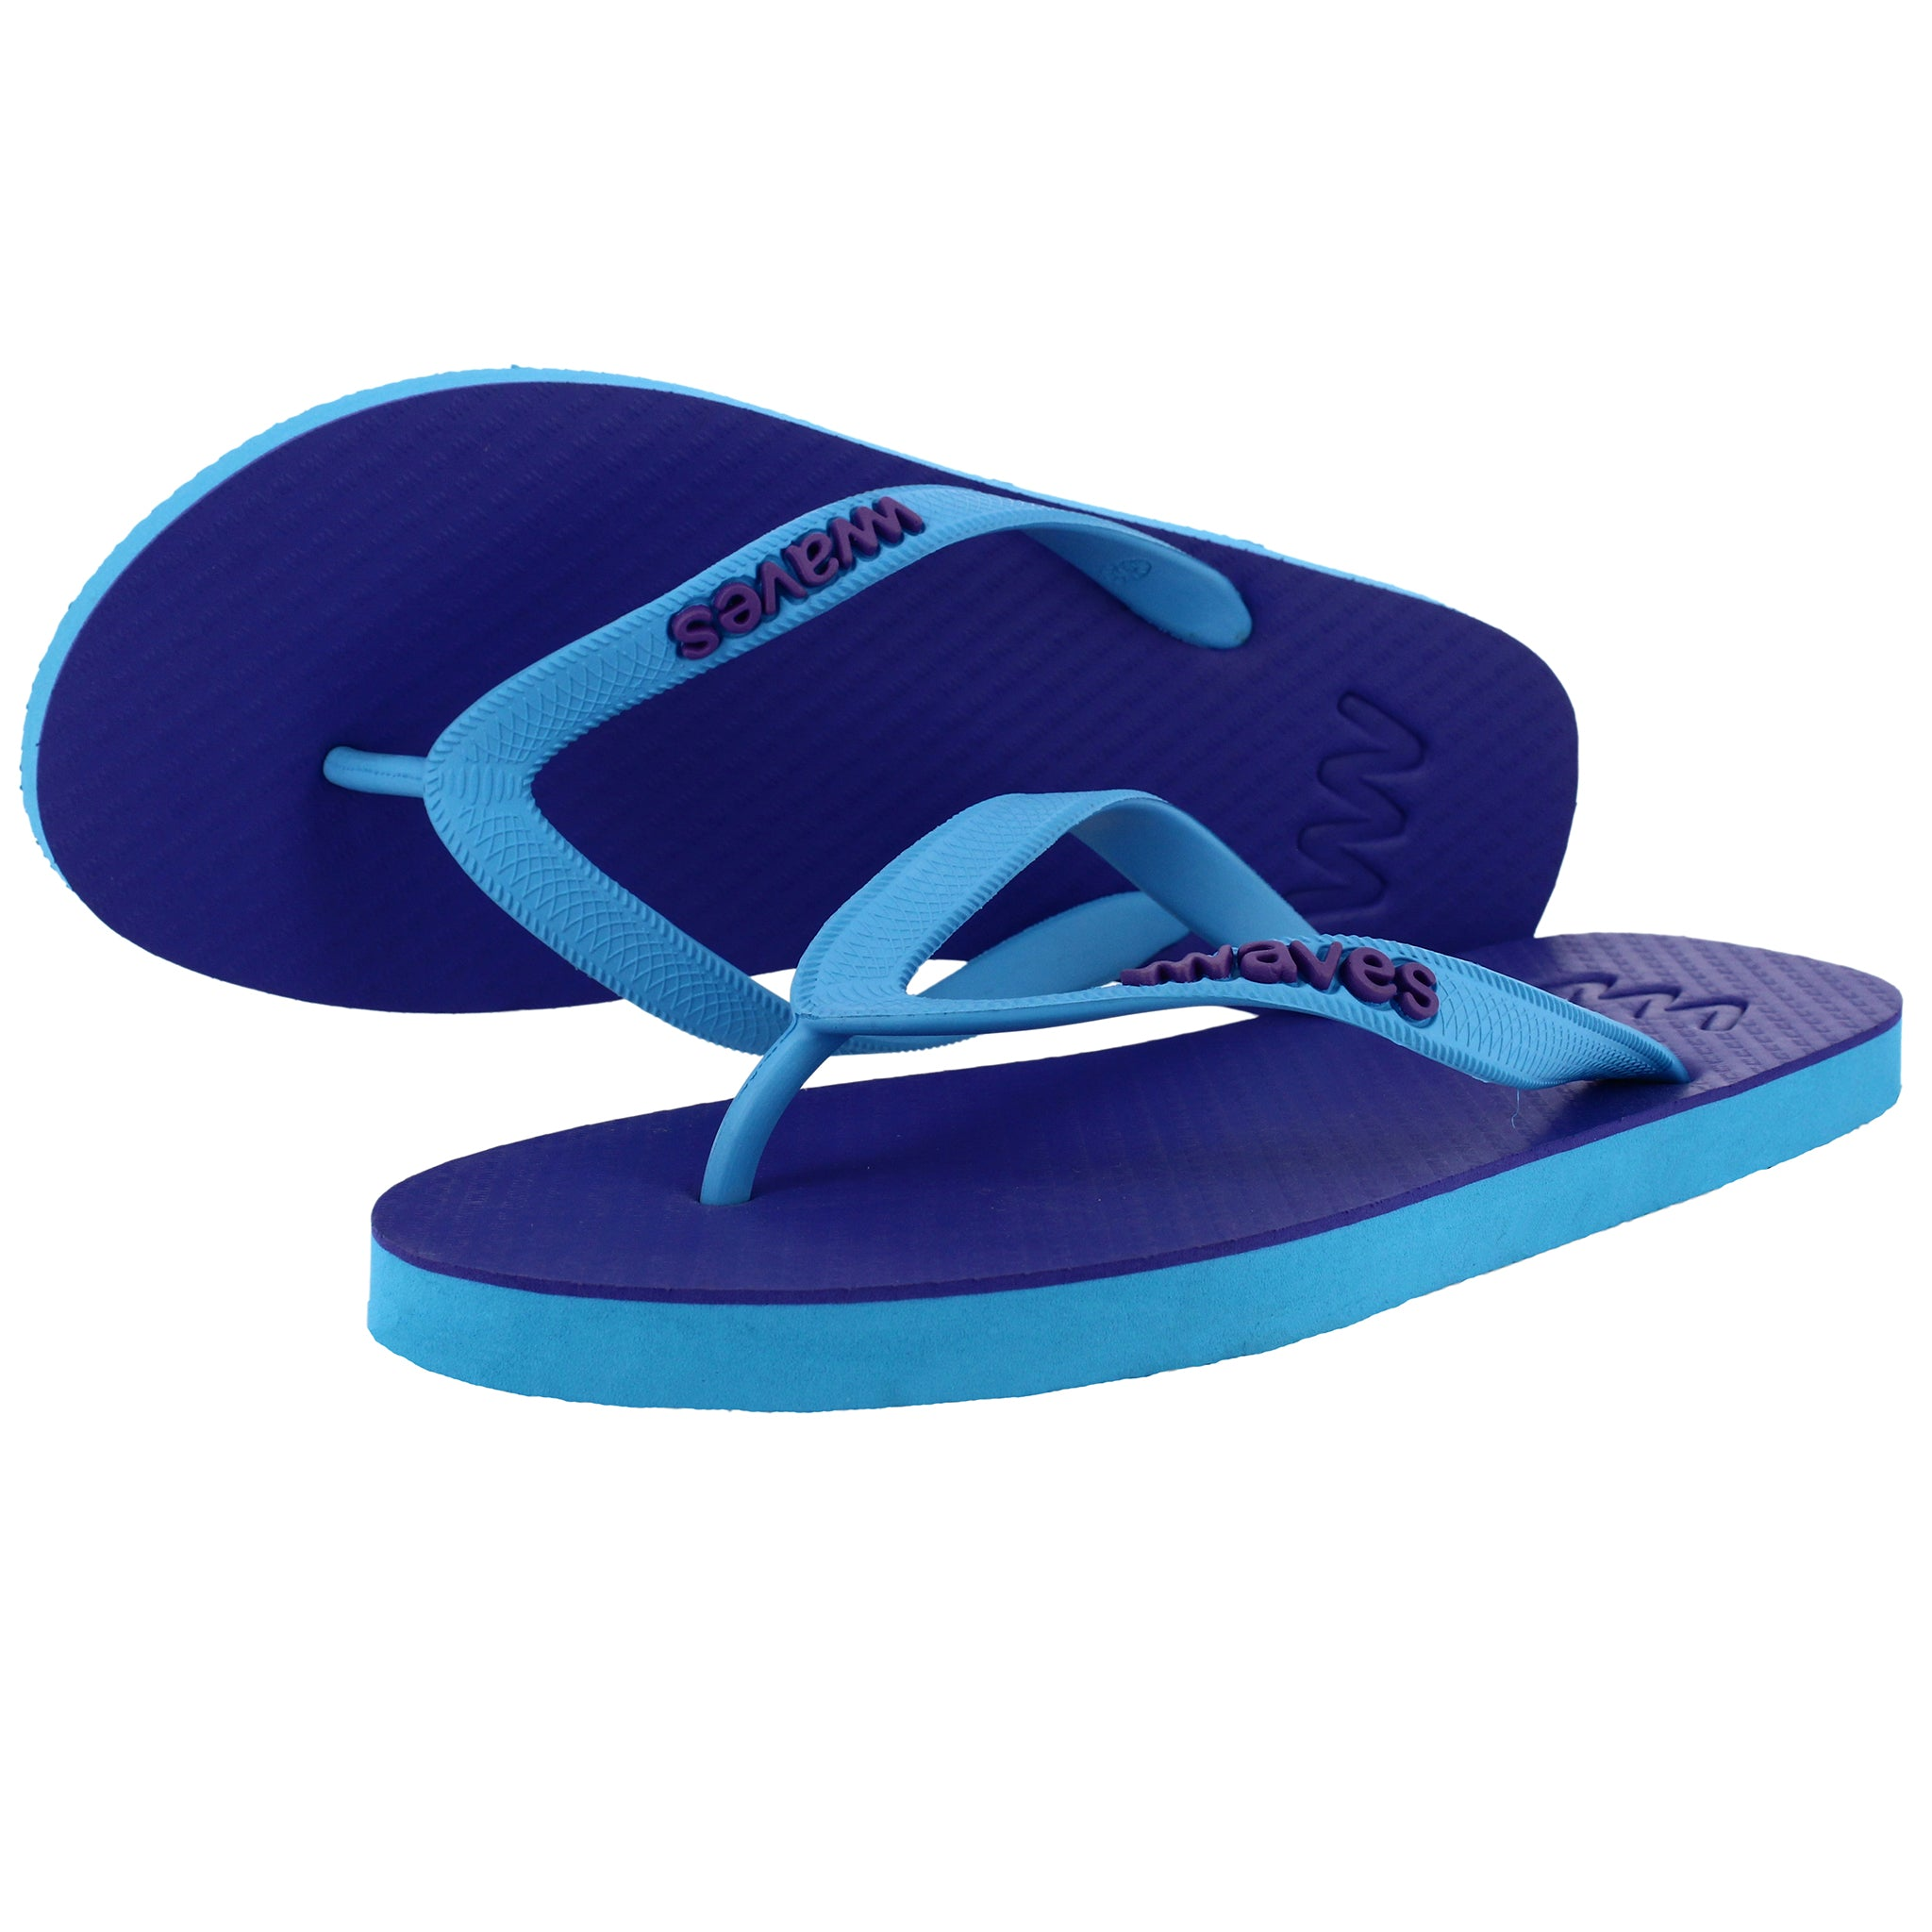 Blue and Purple Twofold Flip Flops, Men's